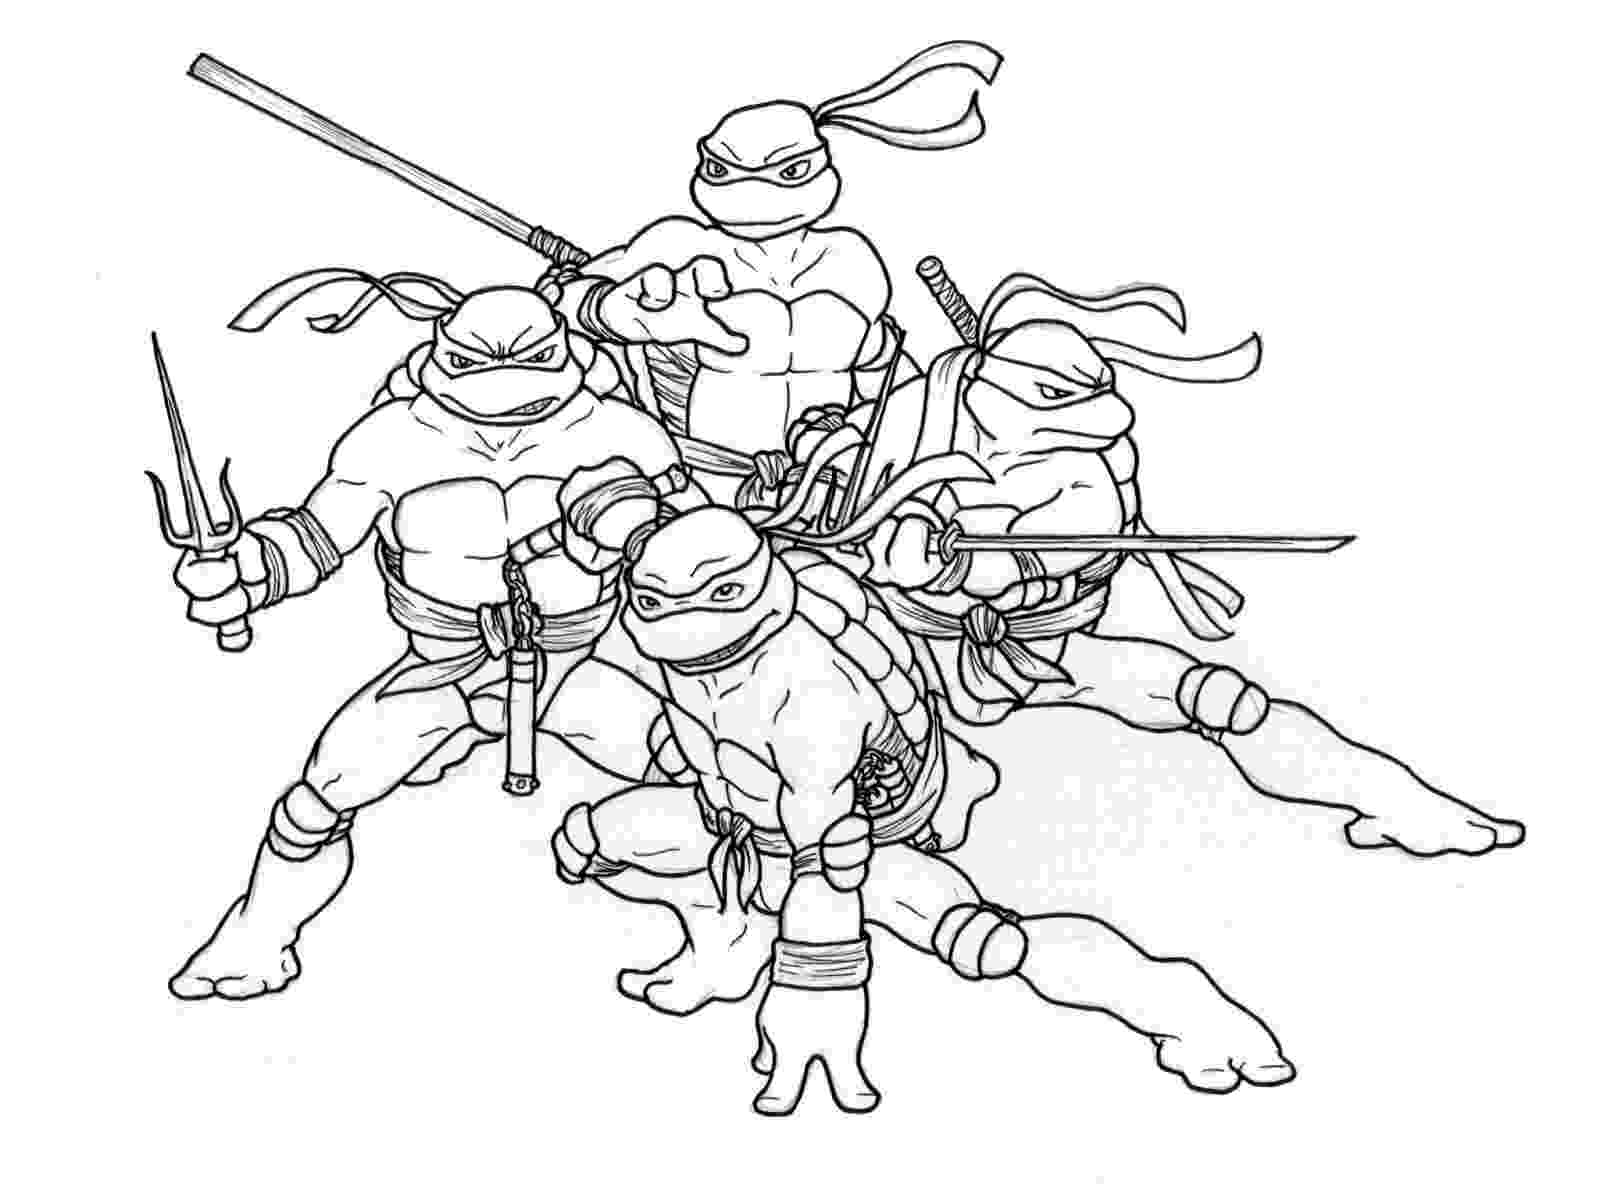 ninja turtles color teenage mutant ninja turtles coloring pages ninja color turtles 1 1